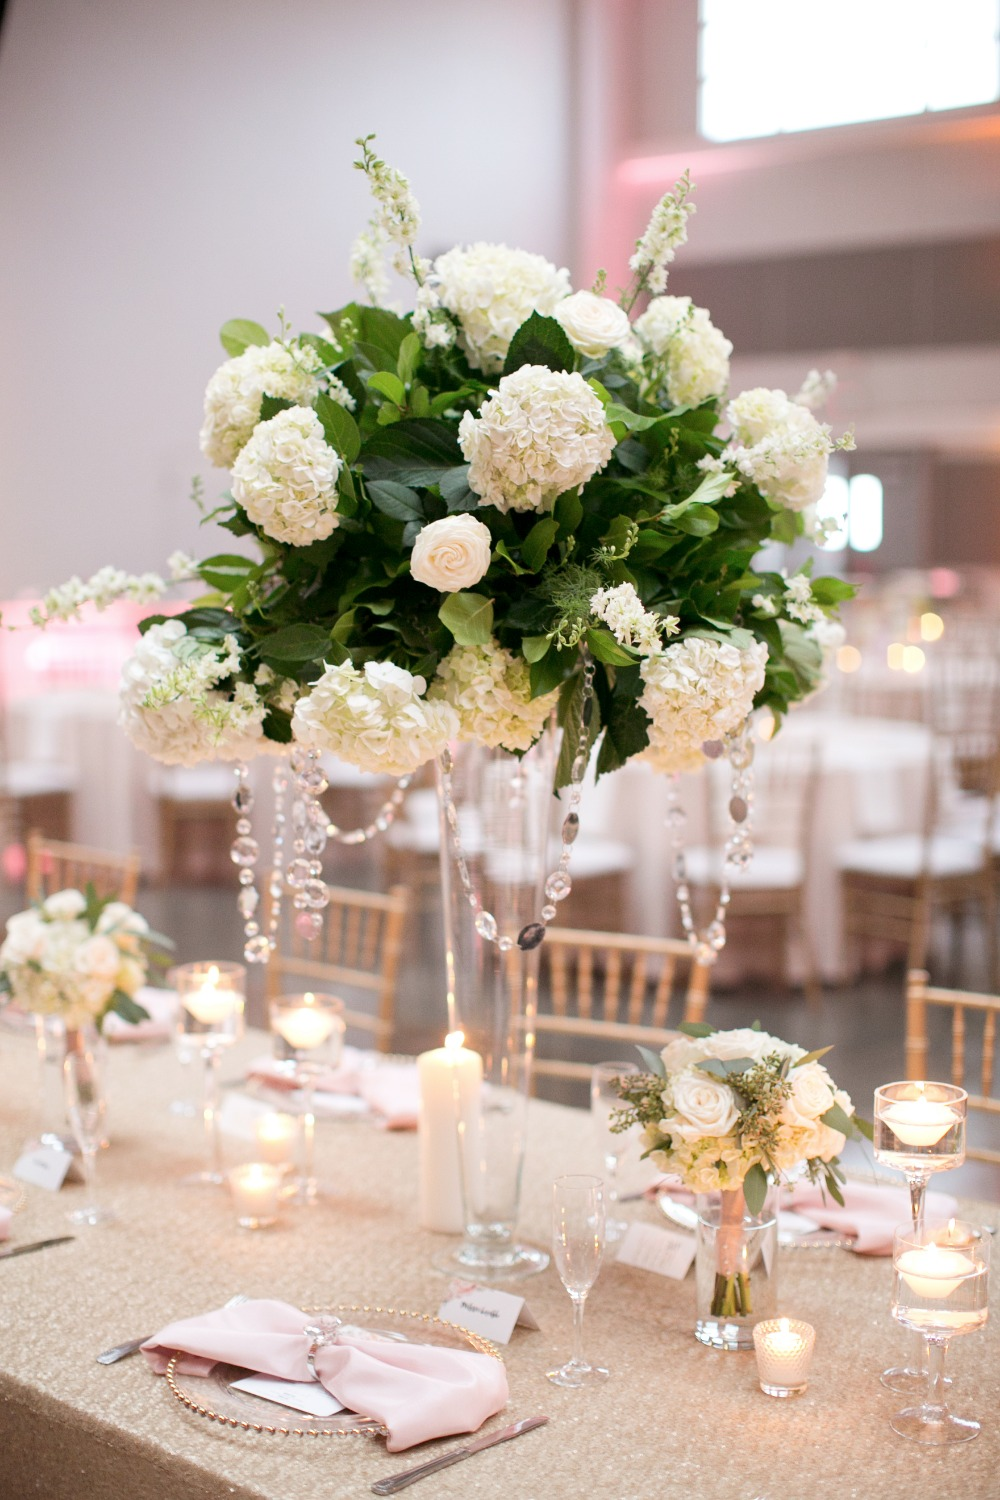 White and green centerpiece idea